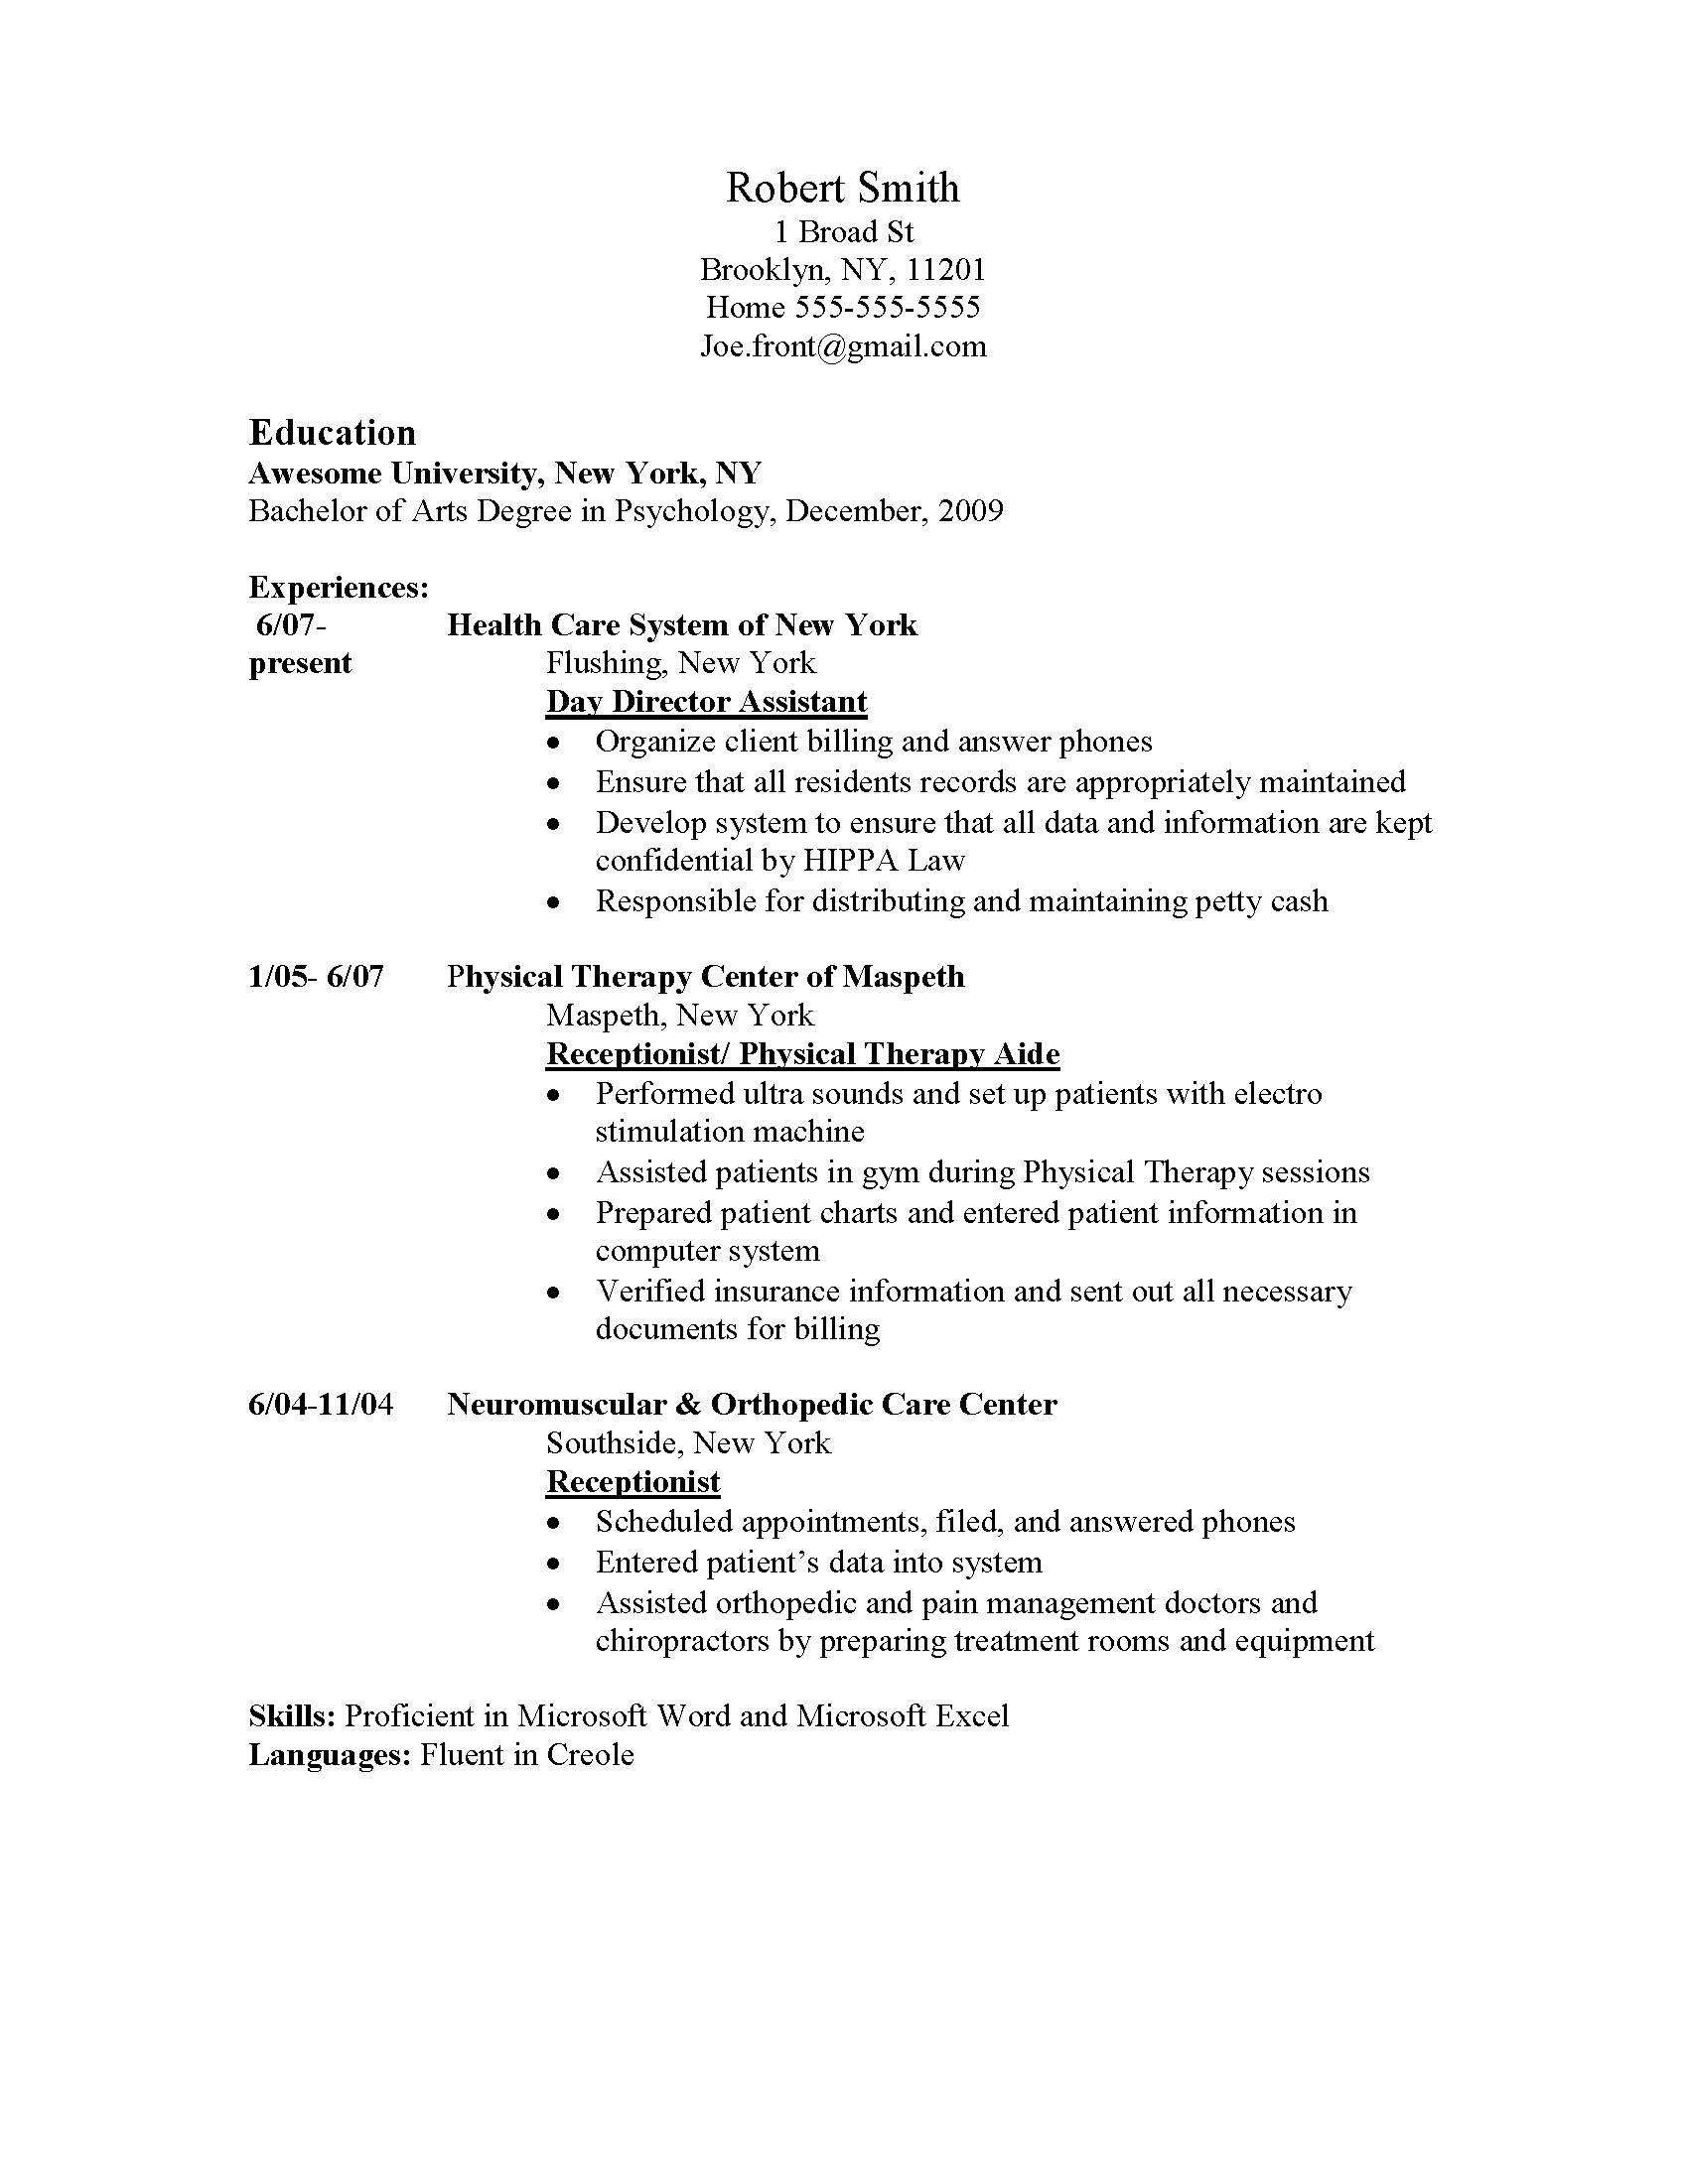 Resume Strengths Examples Key Strengths List For Resume. Planning For  Integrating Teaching .  Key Skills To Put On Resume